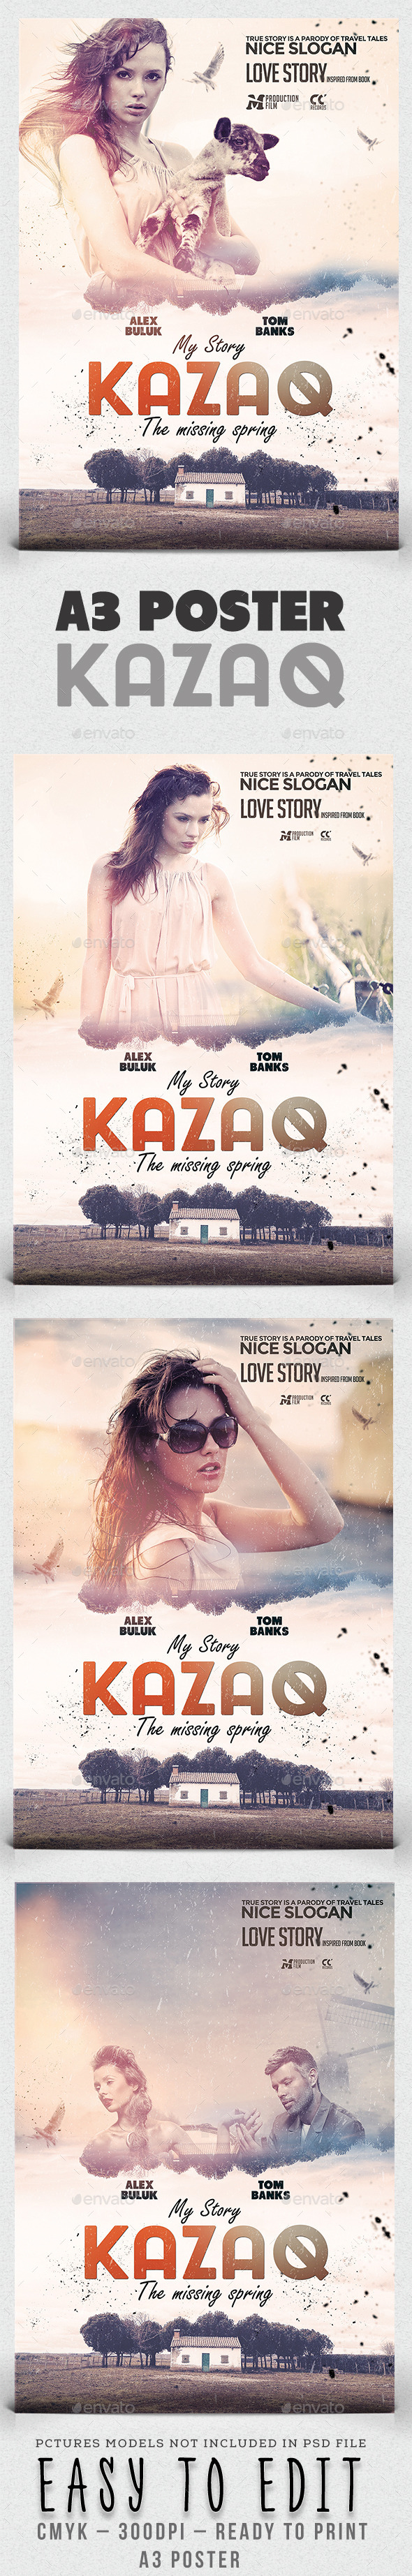 GraphicRiver A3 My Story Kazaq Poster Film Template 11556023